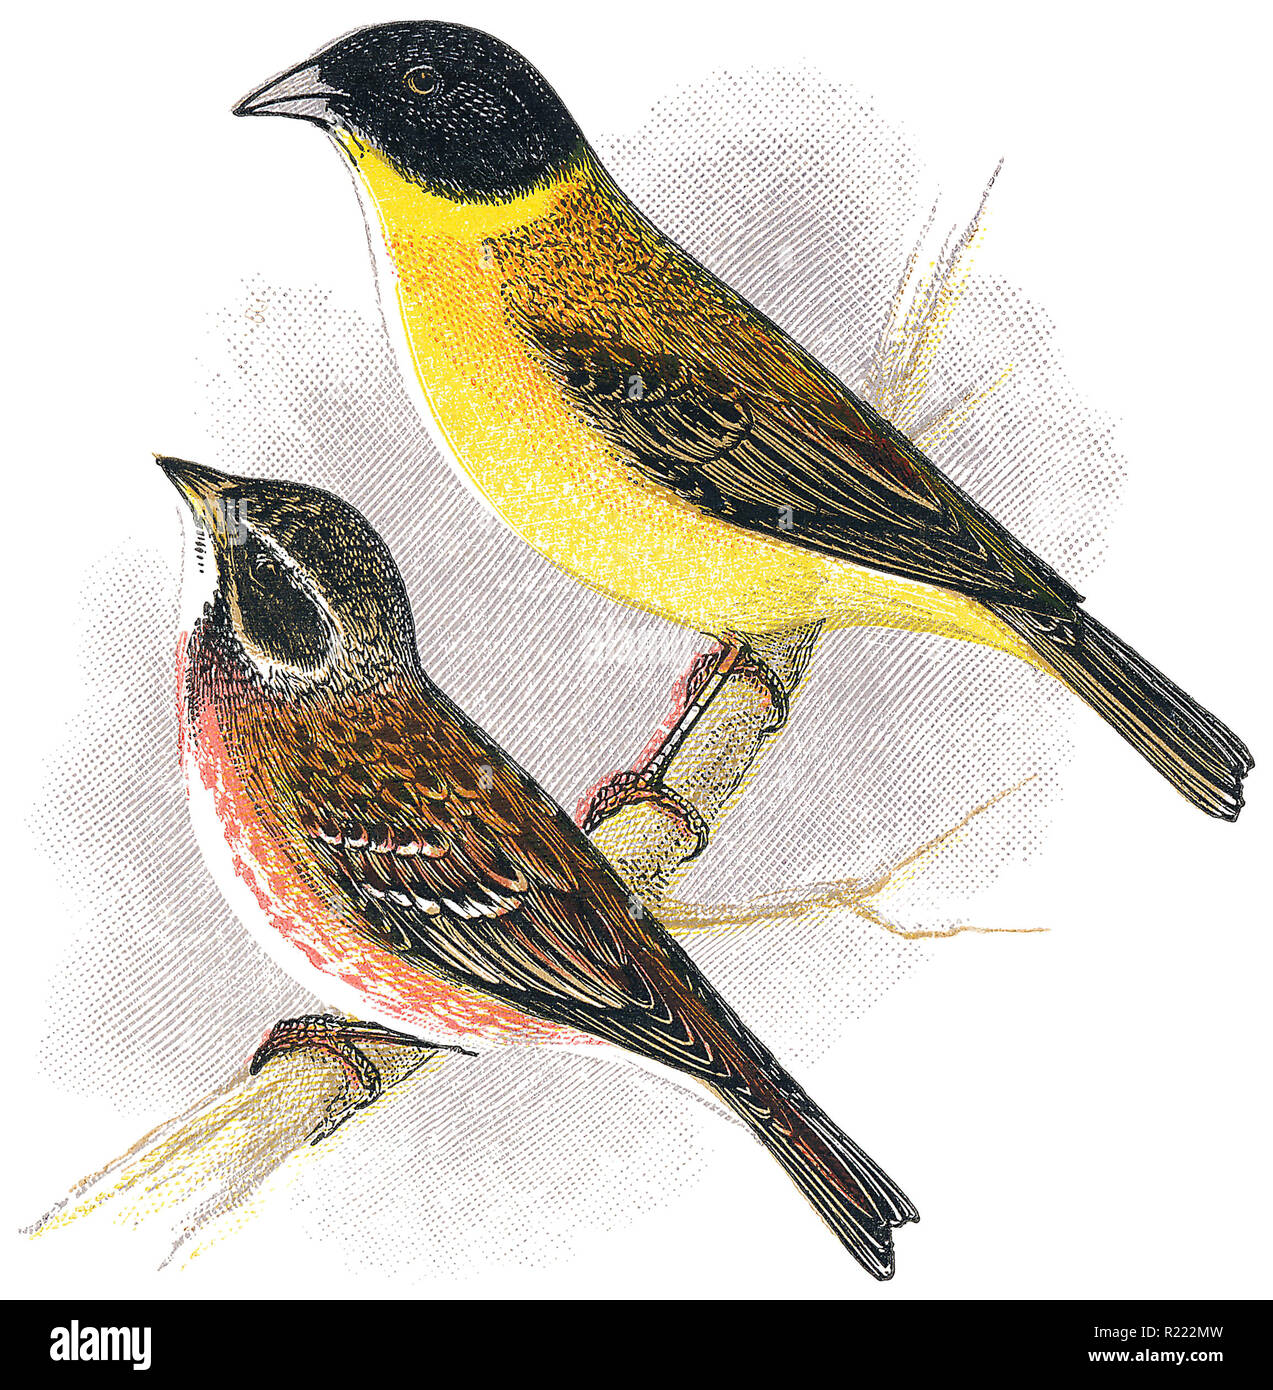 1898 colour engraving of a rustic bunting (Emberiza rustica) and a black-headed bunting (Emberiza melanocephala). - Stock Image